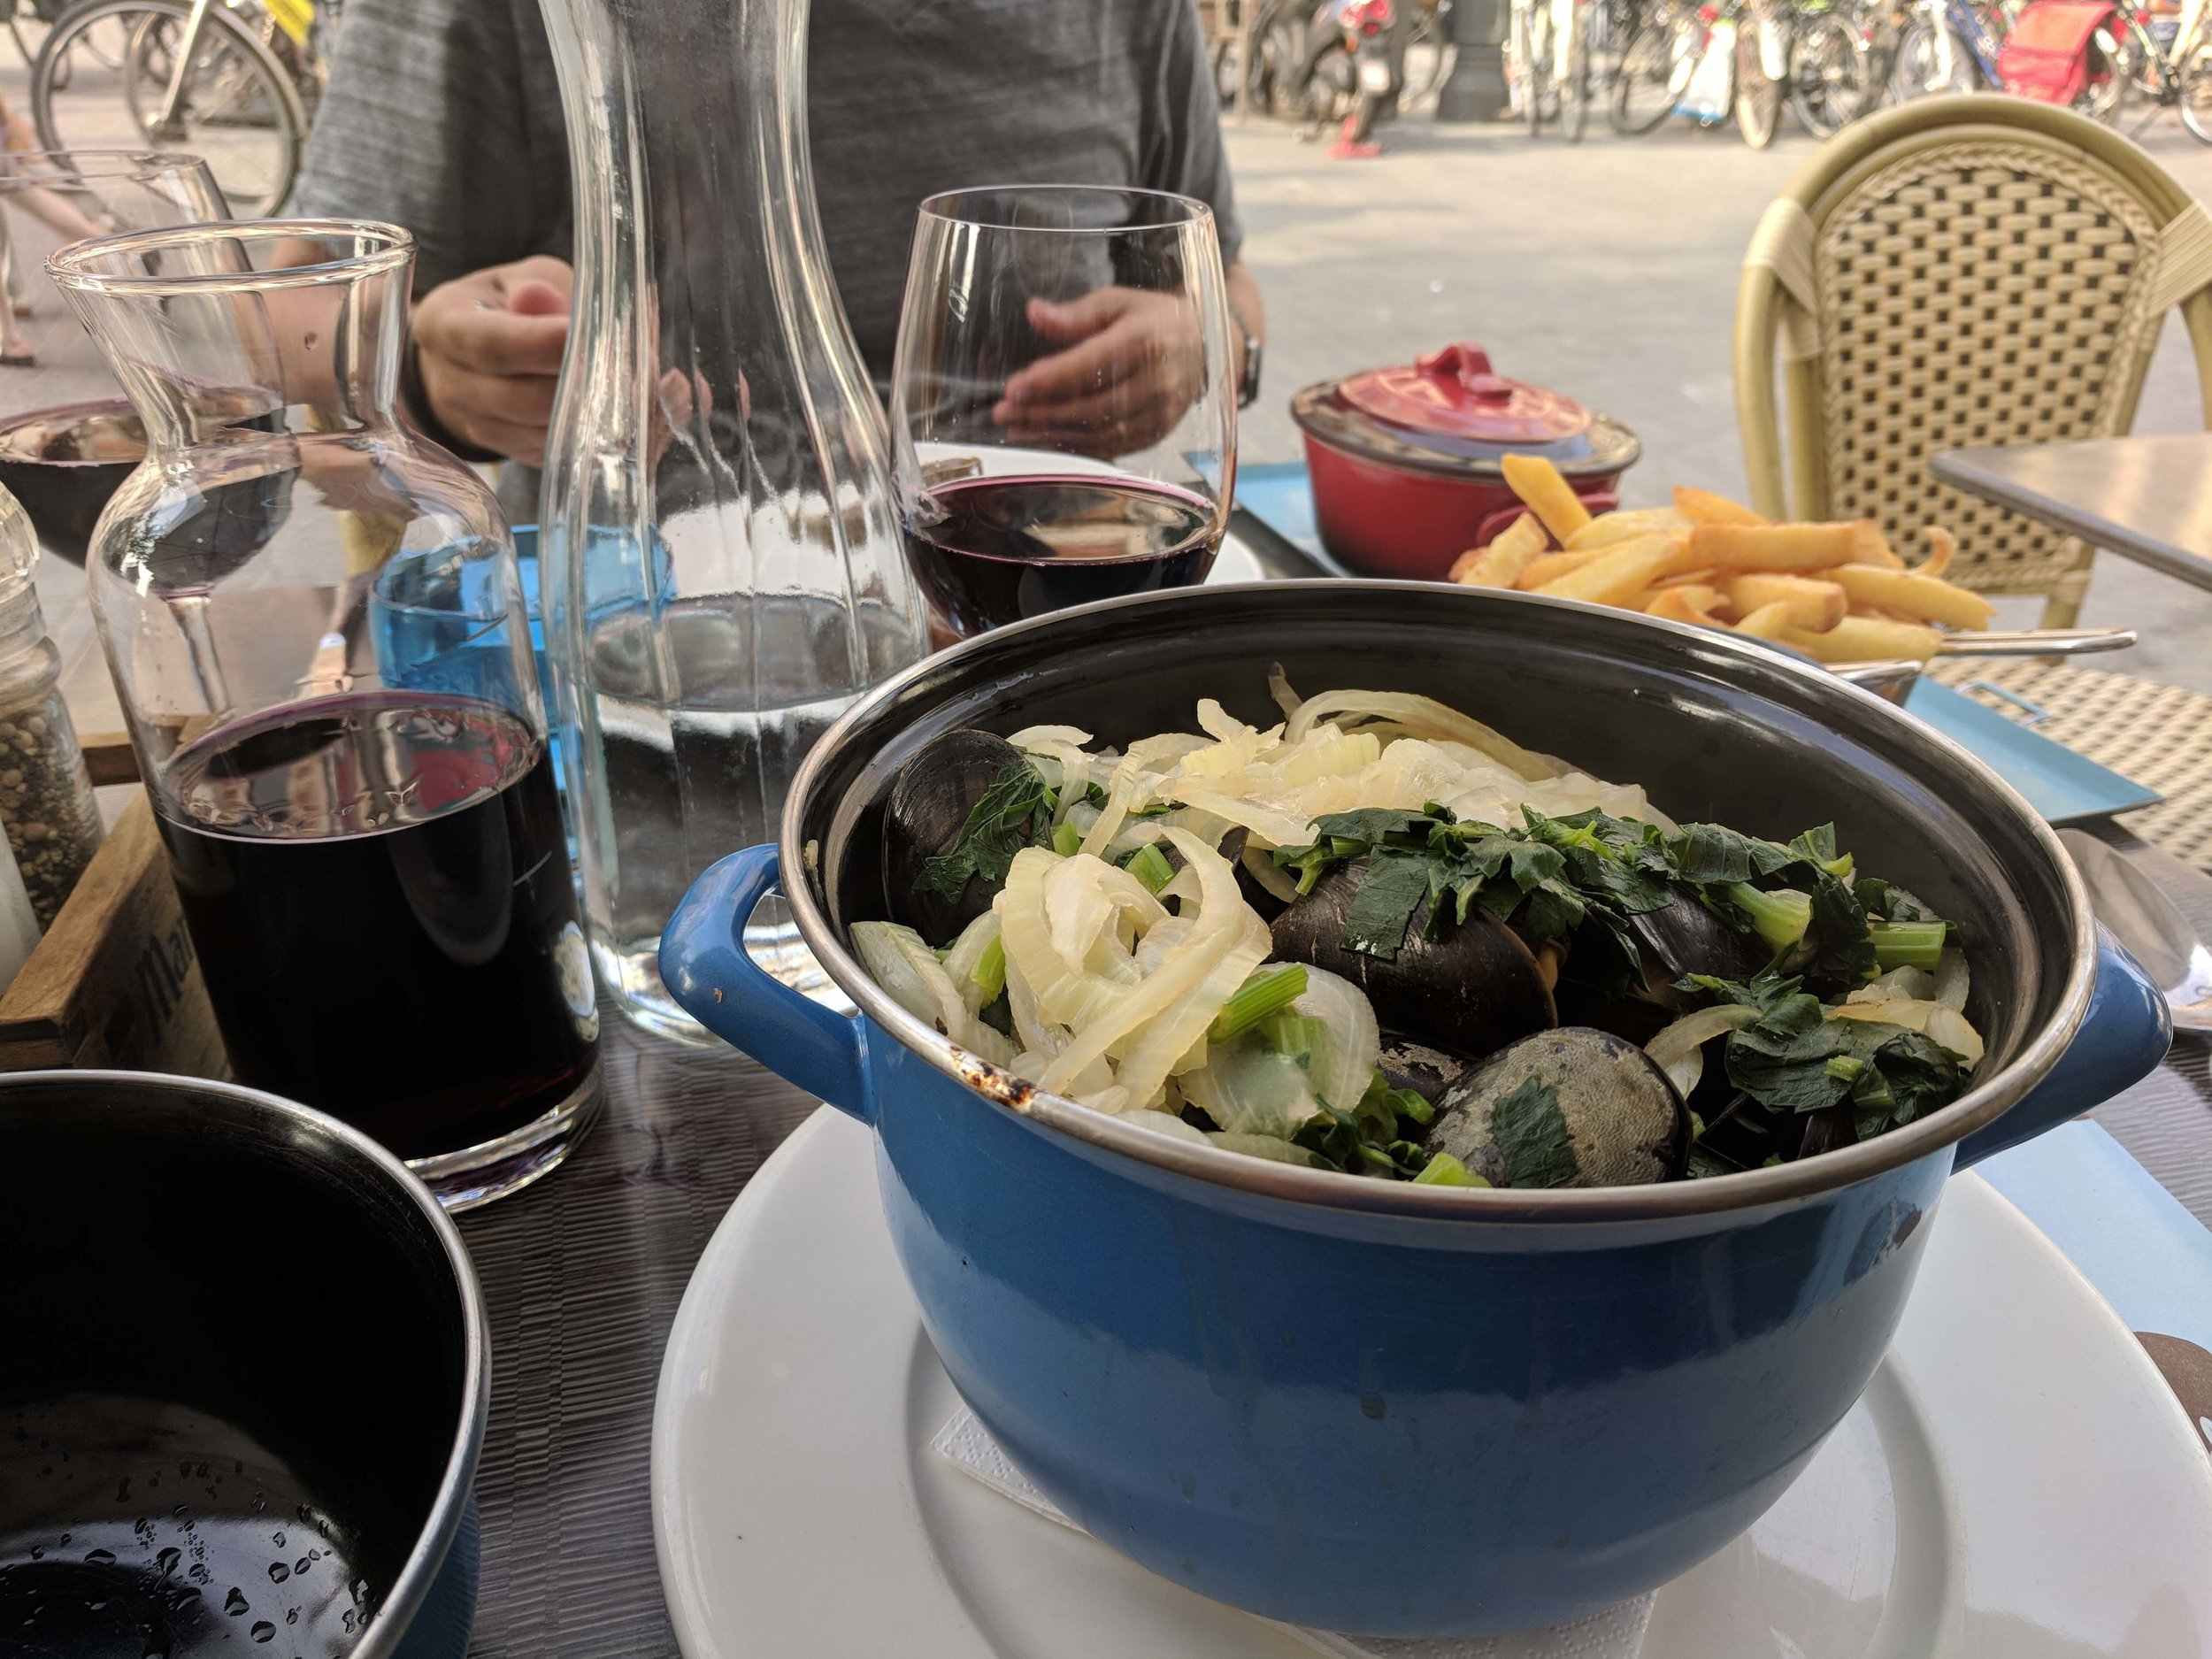 Finally my Moules Frites